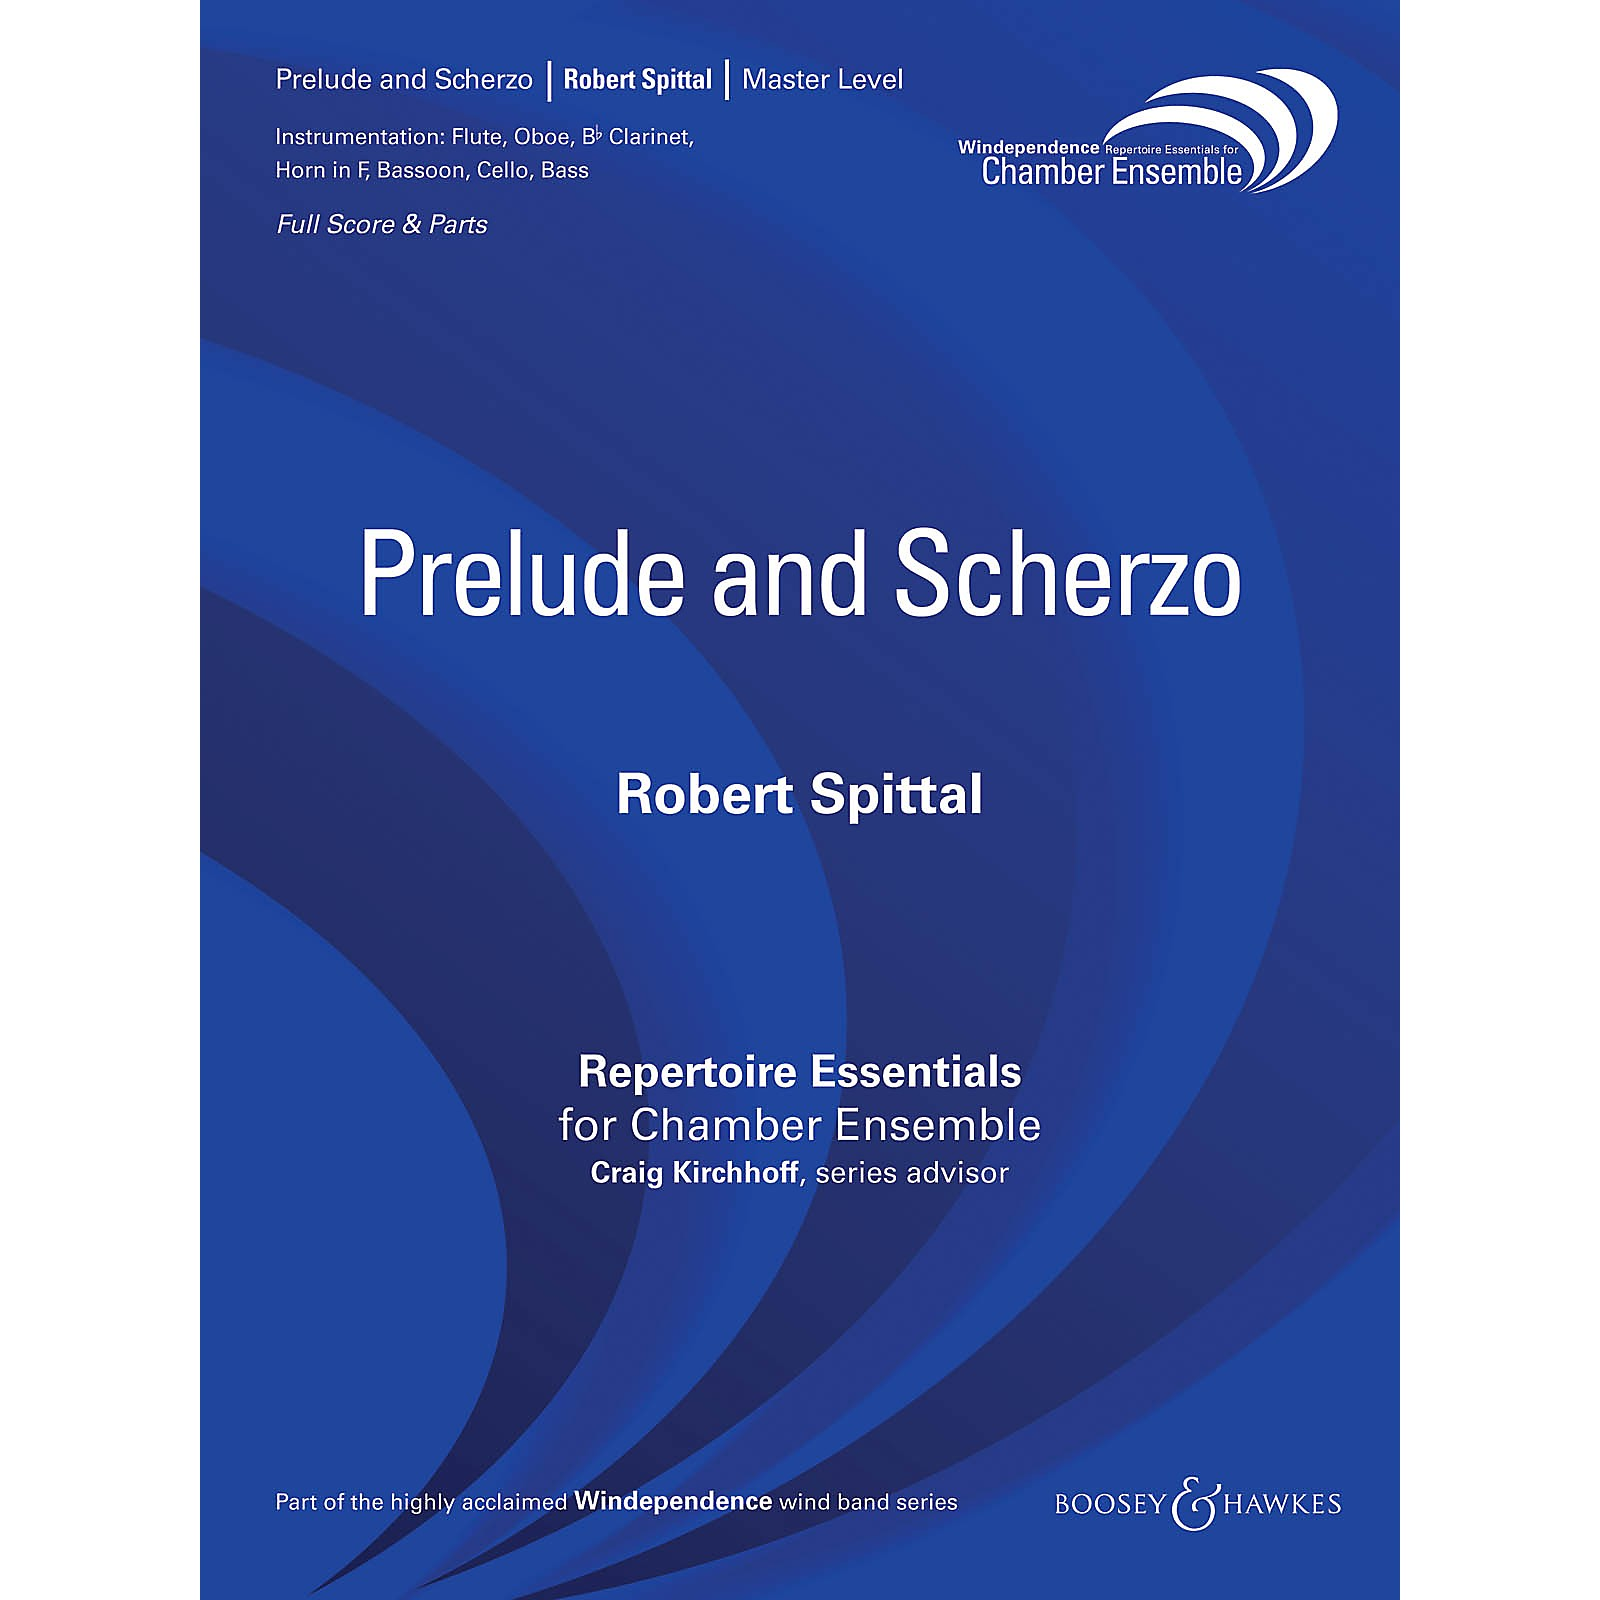 Boosey and Hawkes Prelude and Scherzo Windependence Chamber Ensemble Series by Robert Spittal